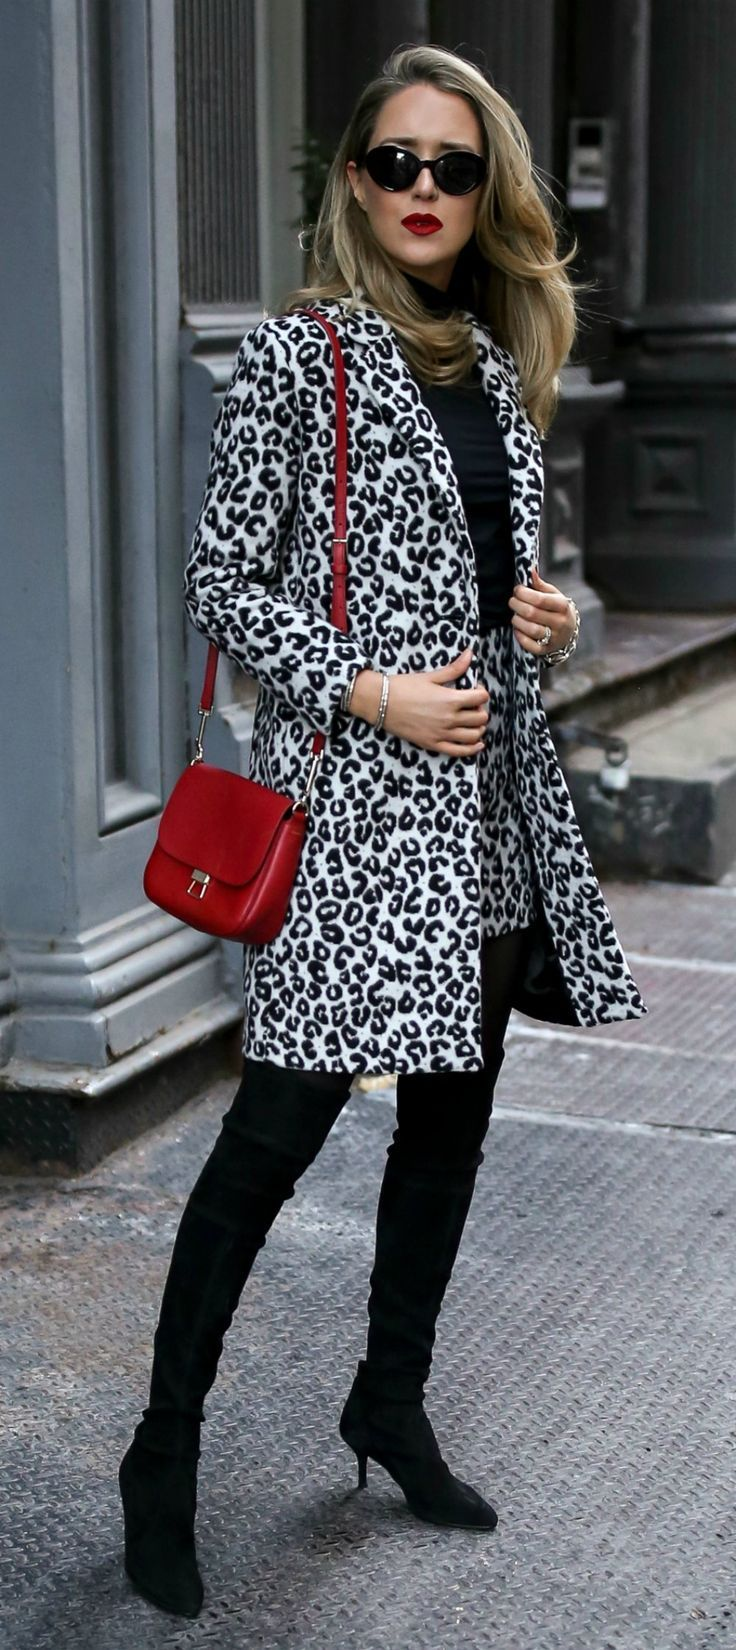 Classic Jewelry + Snow Leopard Coordinates  //  Leopard jacket, leopard mini skirt, black turtleneck, red shoulder bag, dainty silver bangle bracelets, black over-the-knee boots, black sunglasses {Maje, Stuart Weitzman, winter style, what to wear, festive